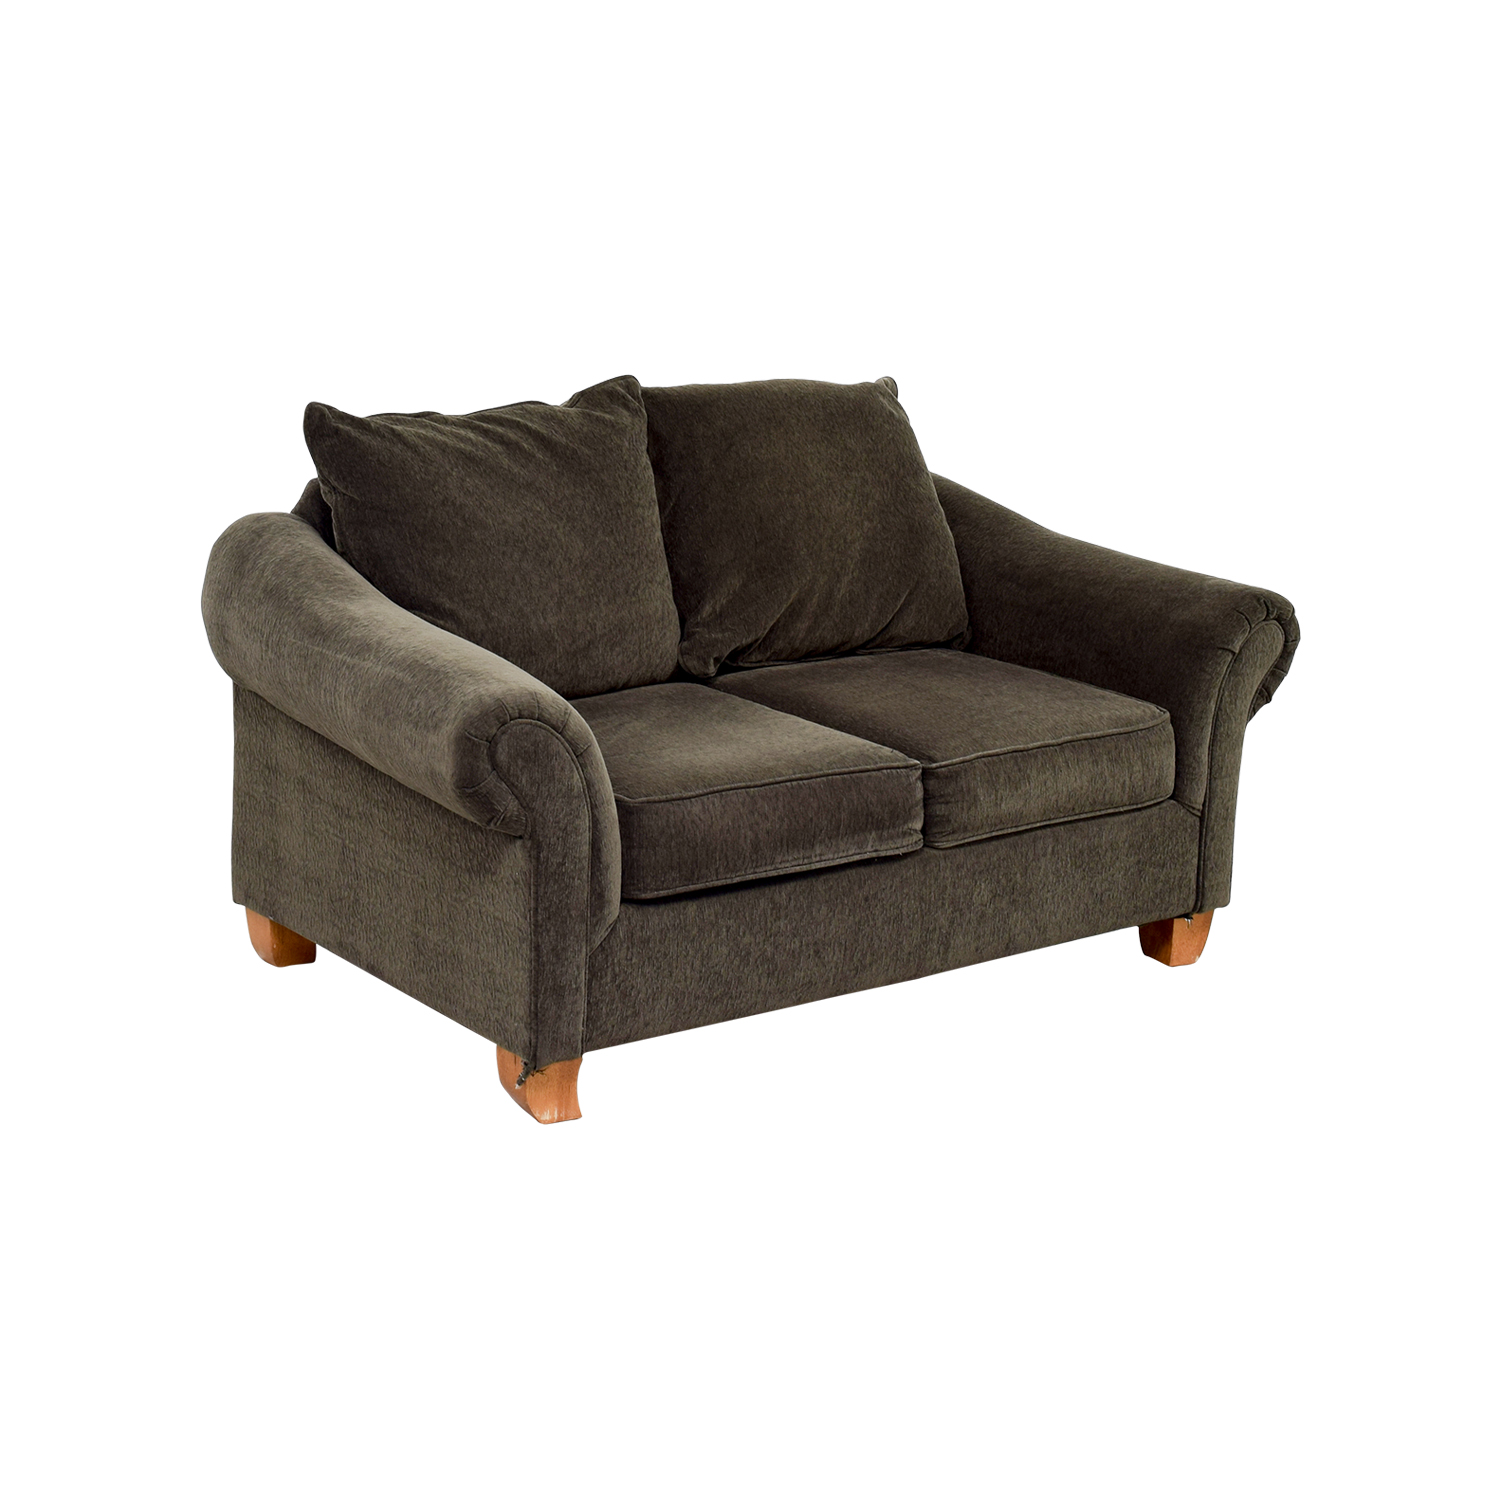 star furniture sofas darrin leather sofa reviews 40 off brown curved arms